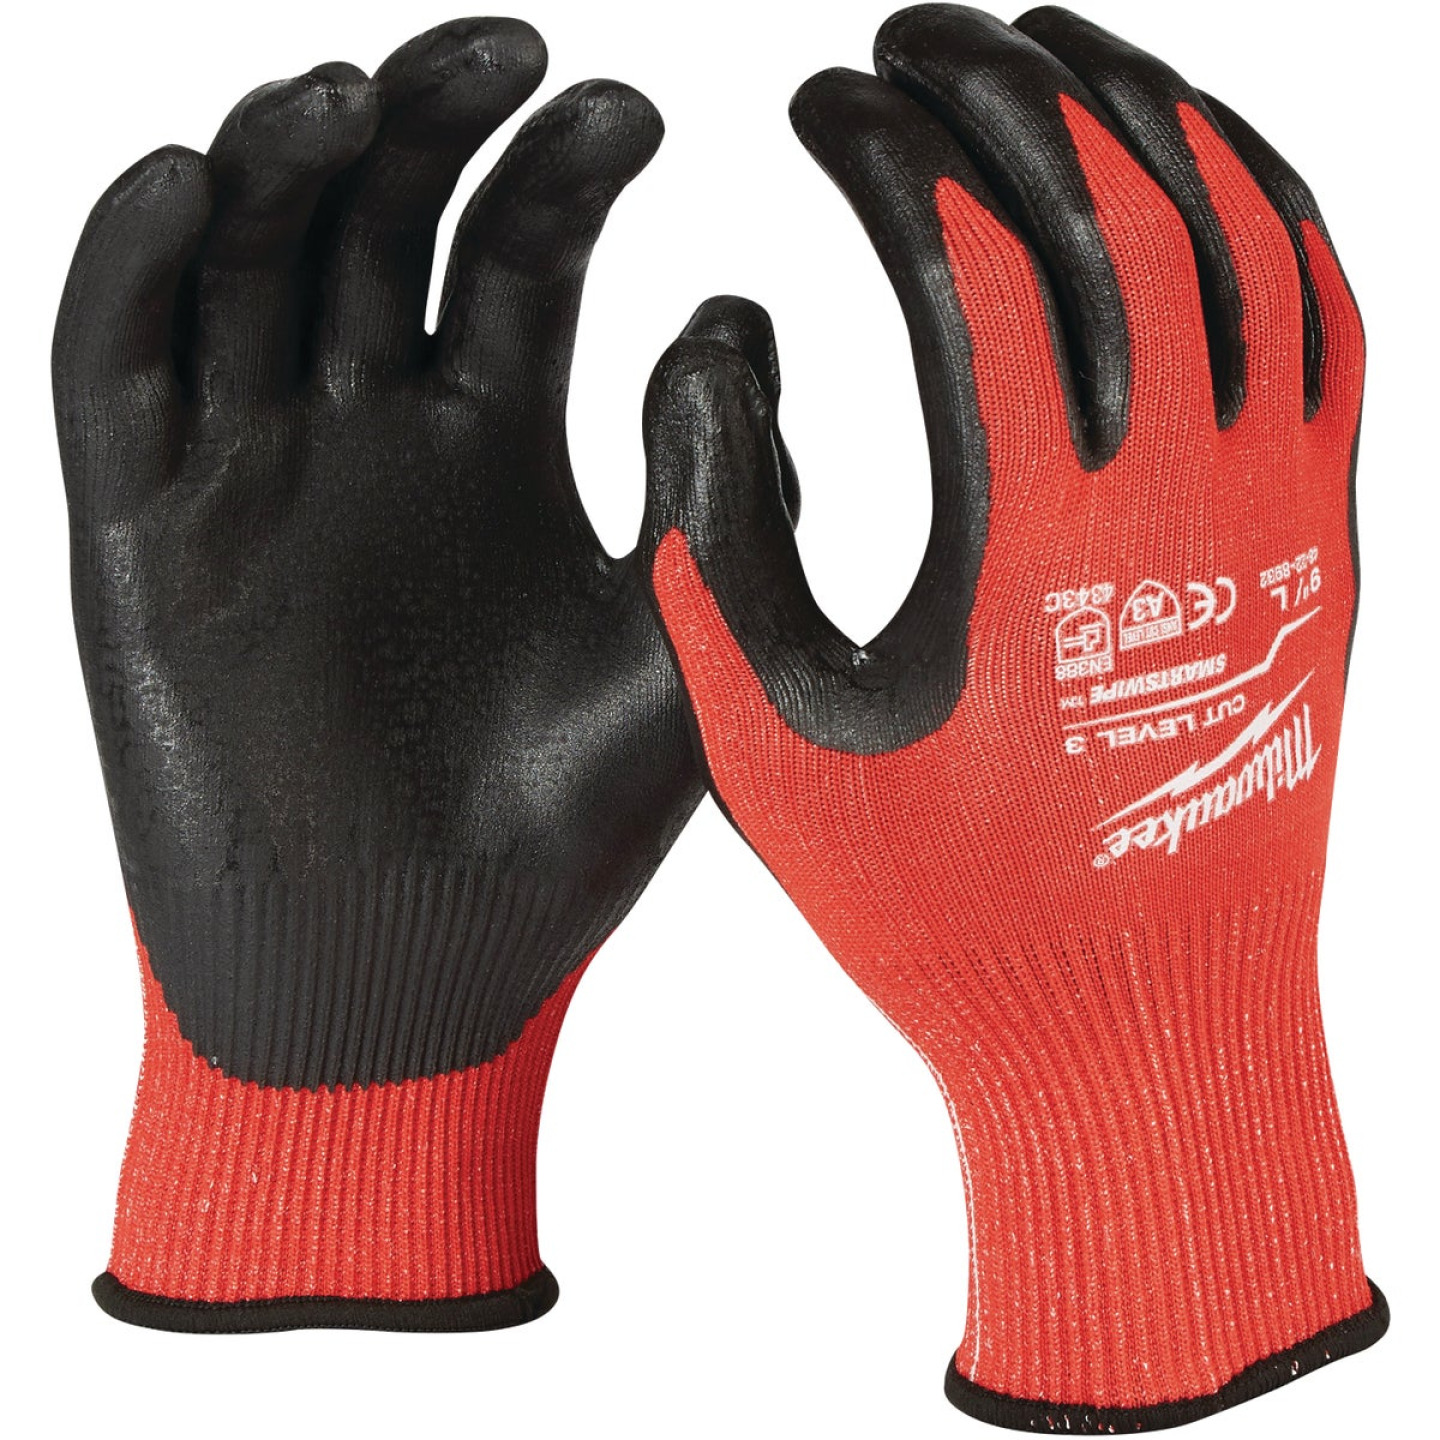 Milwaukee Men's Large Nitrile Coated Cut Level 3 Work Glove Image 1